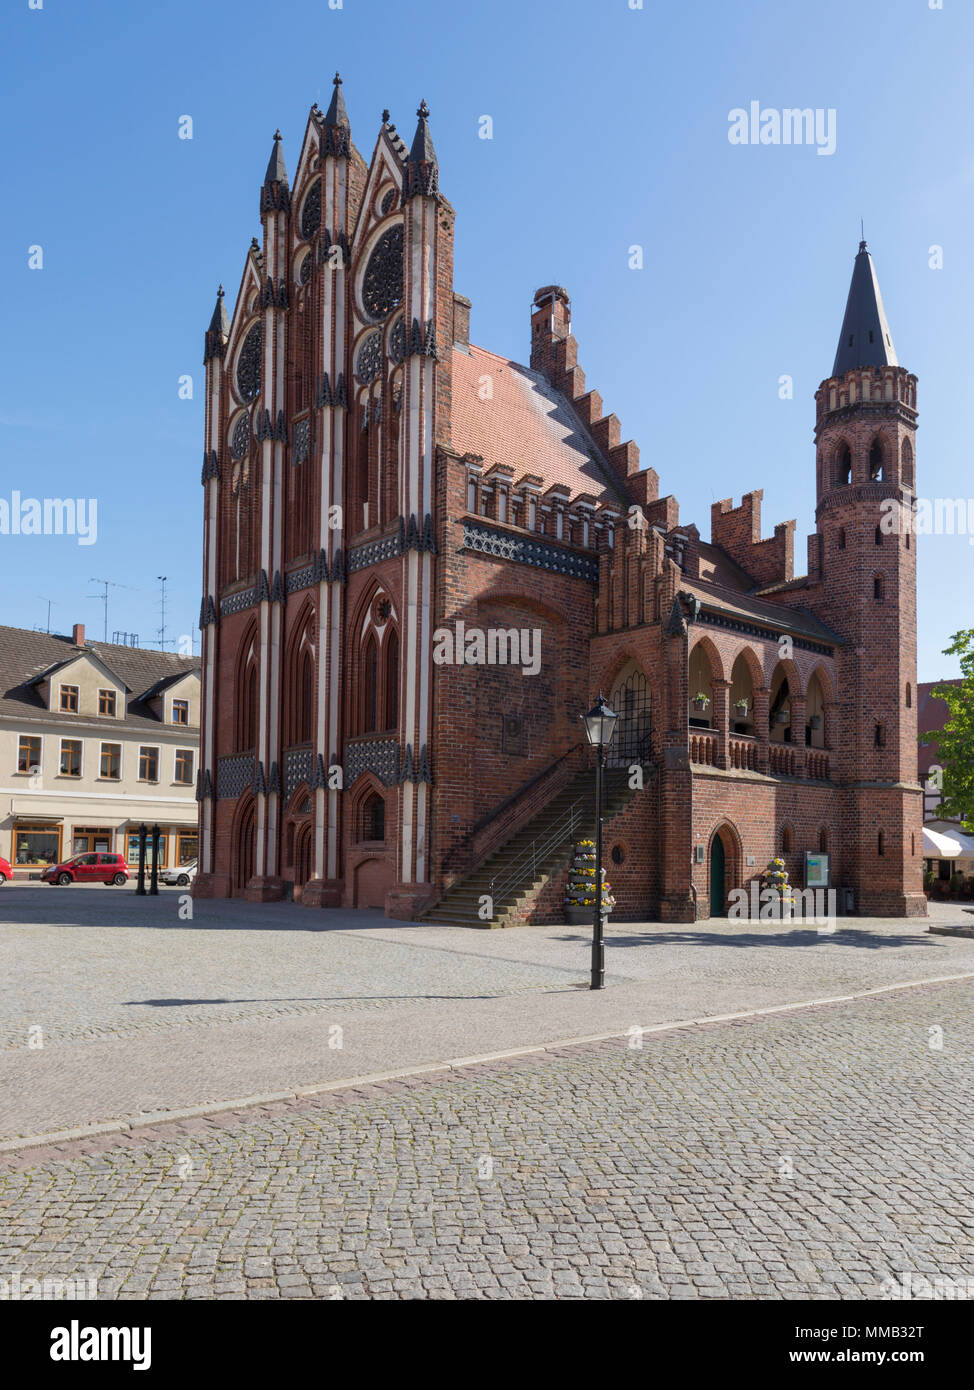 Historic town hall at the Hanseatic City of Tangermünde, Saxony-Anhalt, Germany - Stock Image